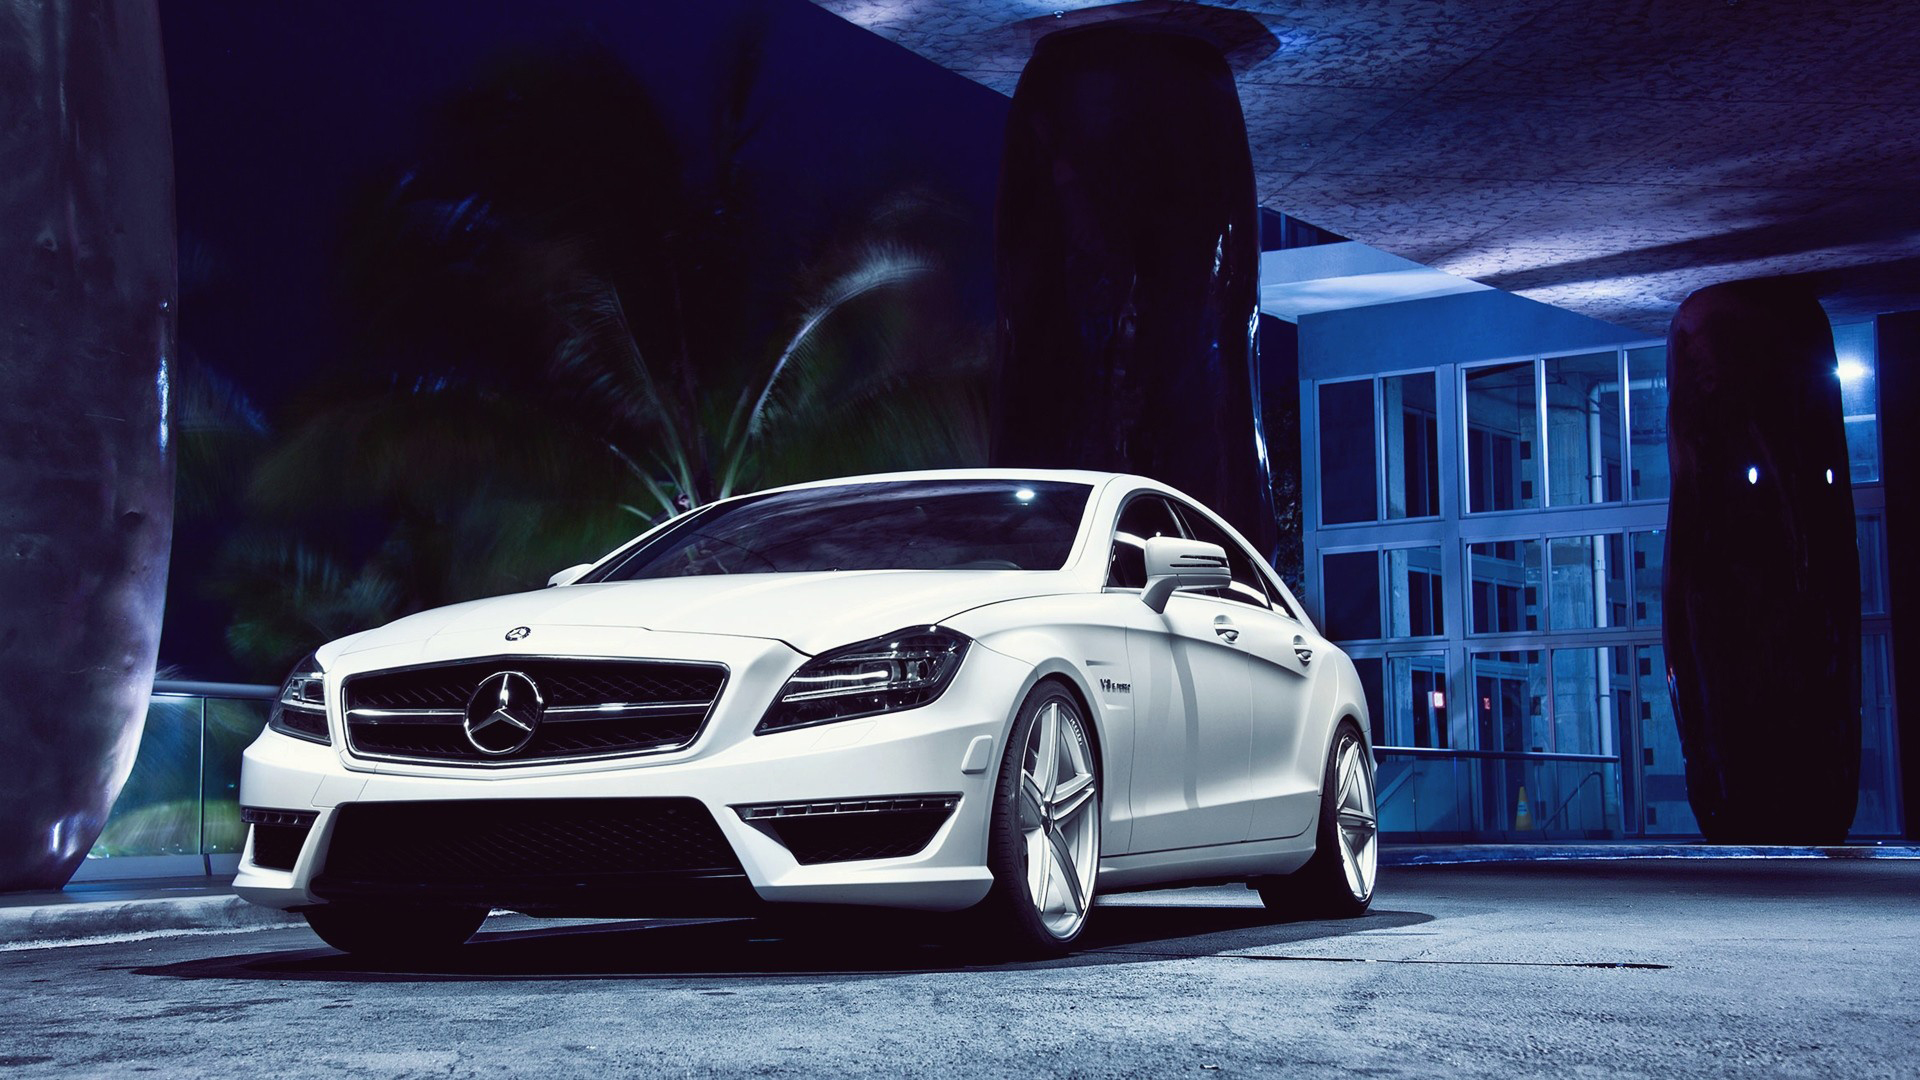 20 Excellent HD Mercedes Wallpapers